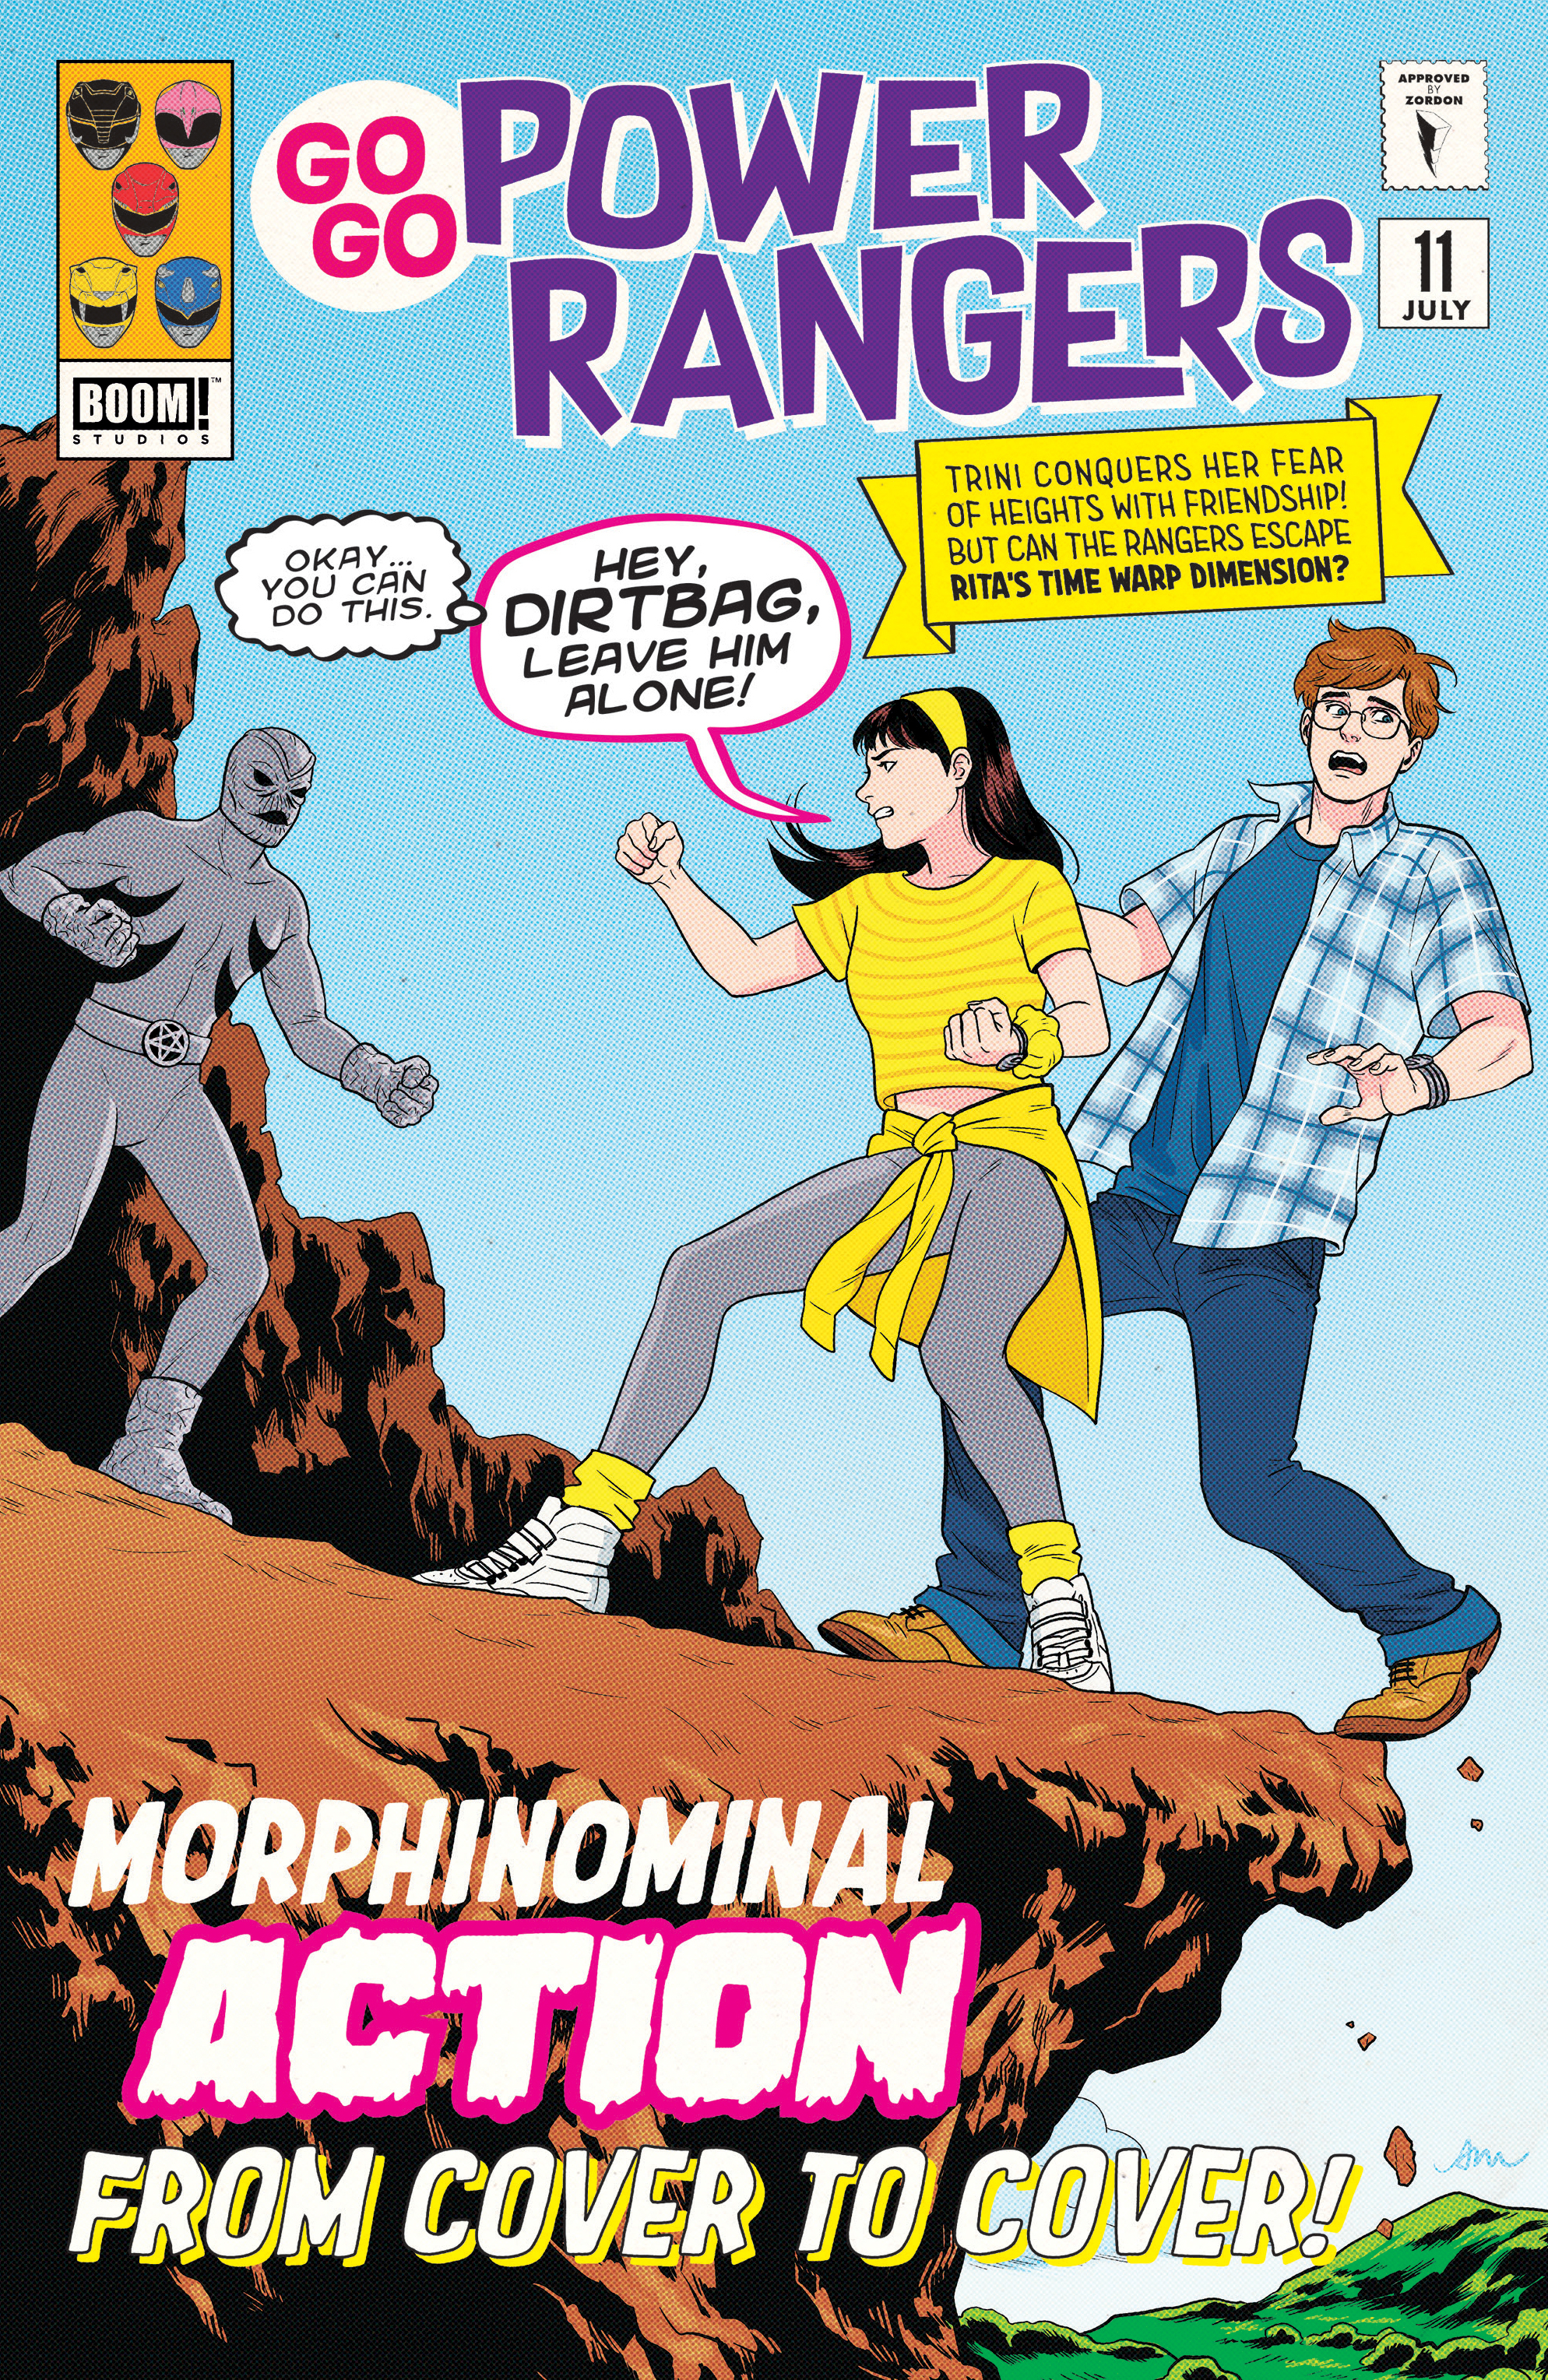 GO GO POWER RANGERS #11 SUBSCRIPTION MOK VAR SG